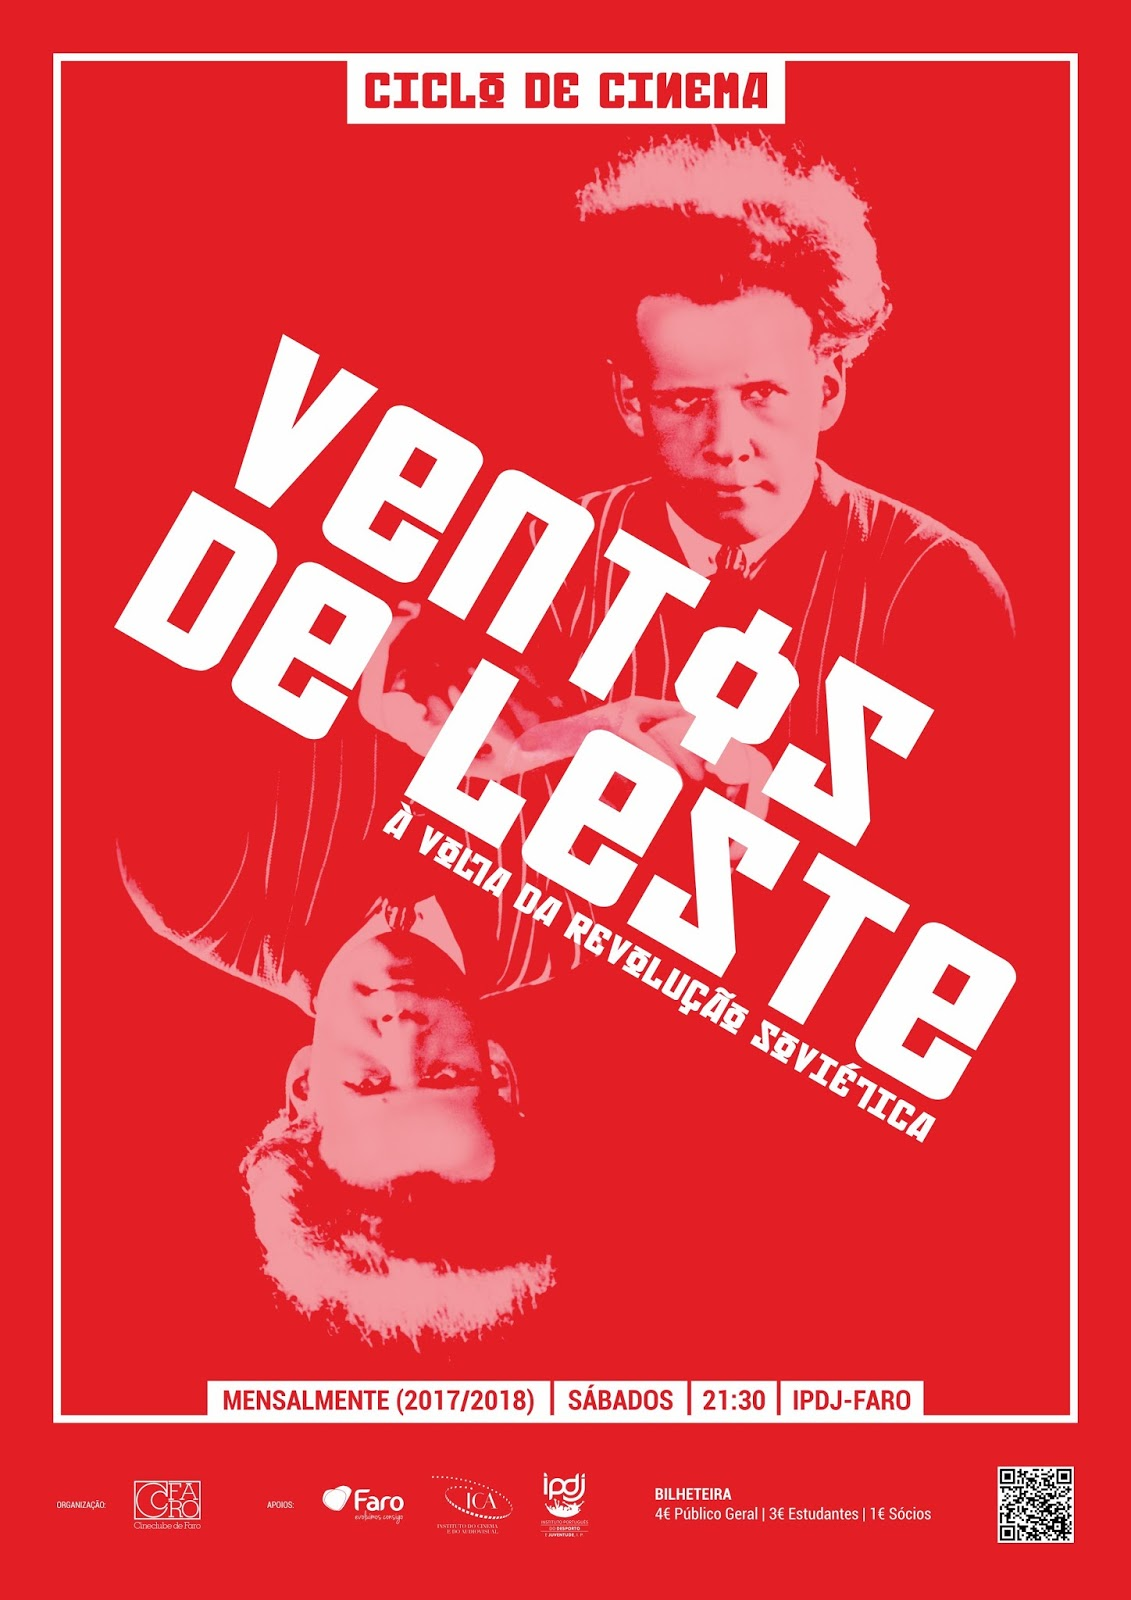 06 Ventos de Leste Out17 Dez18 NET